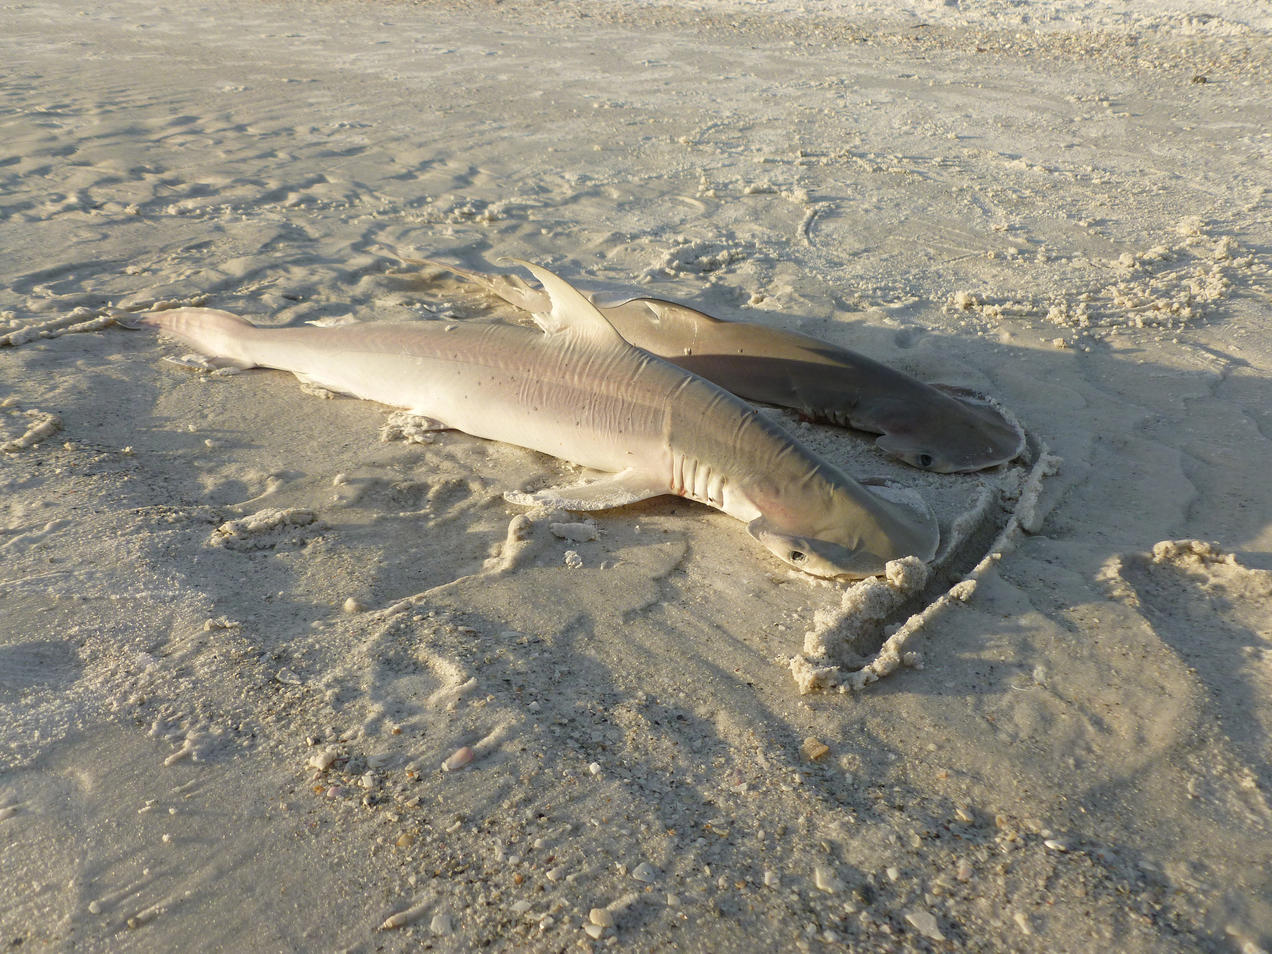 It Can't Be Legal to Drag or Shoot a Shark  Can It? | NRDC